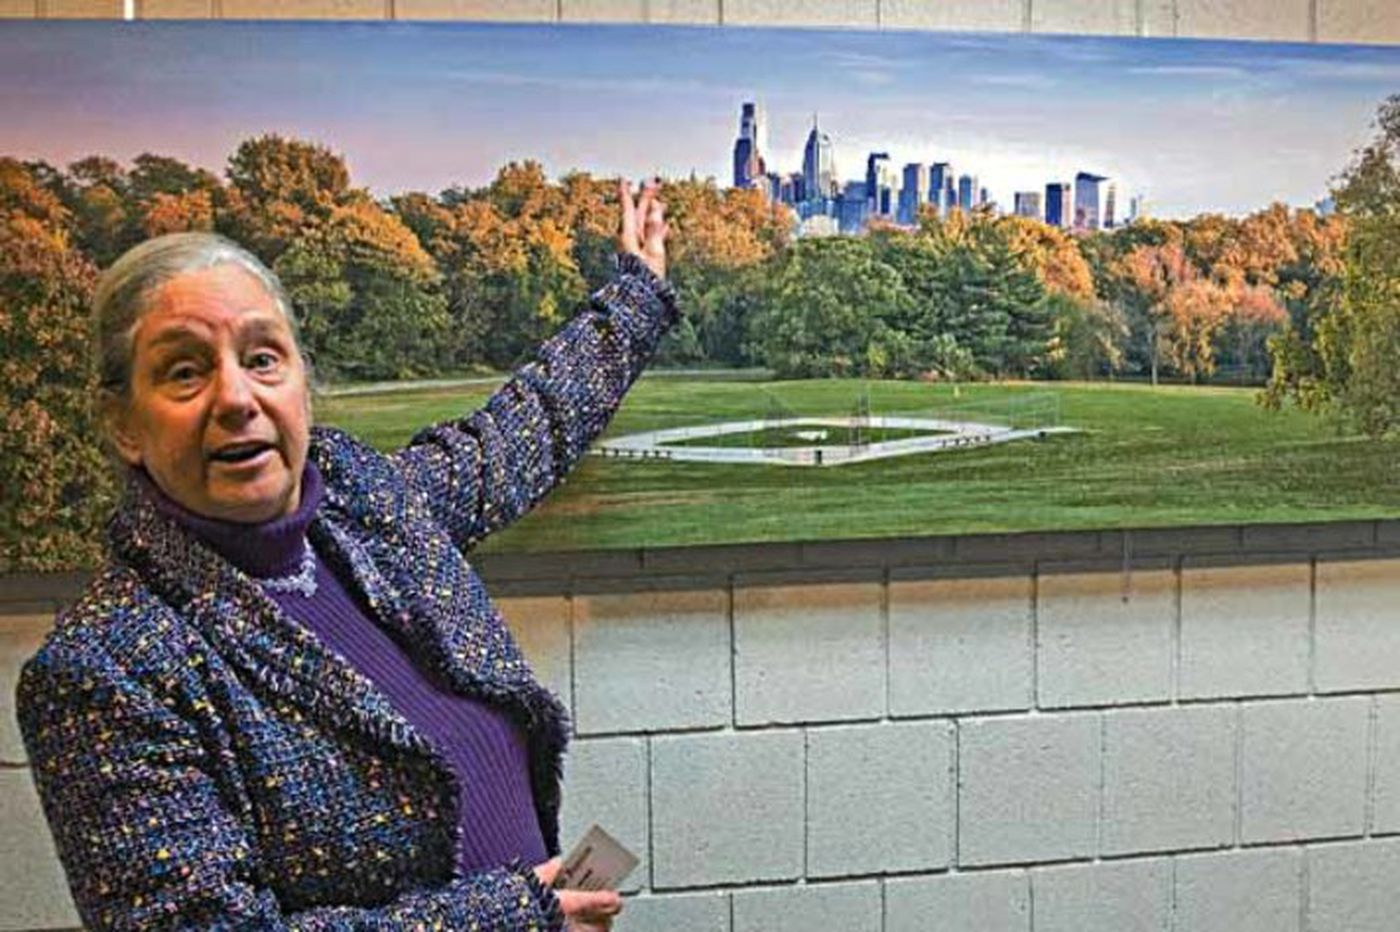 Pauline Jonas, 69, innovator who brought art and cultural events to Deptford, N.J.